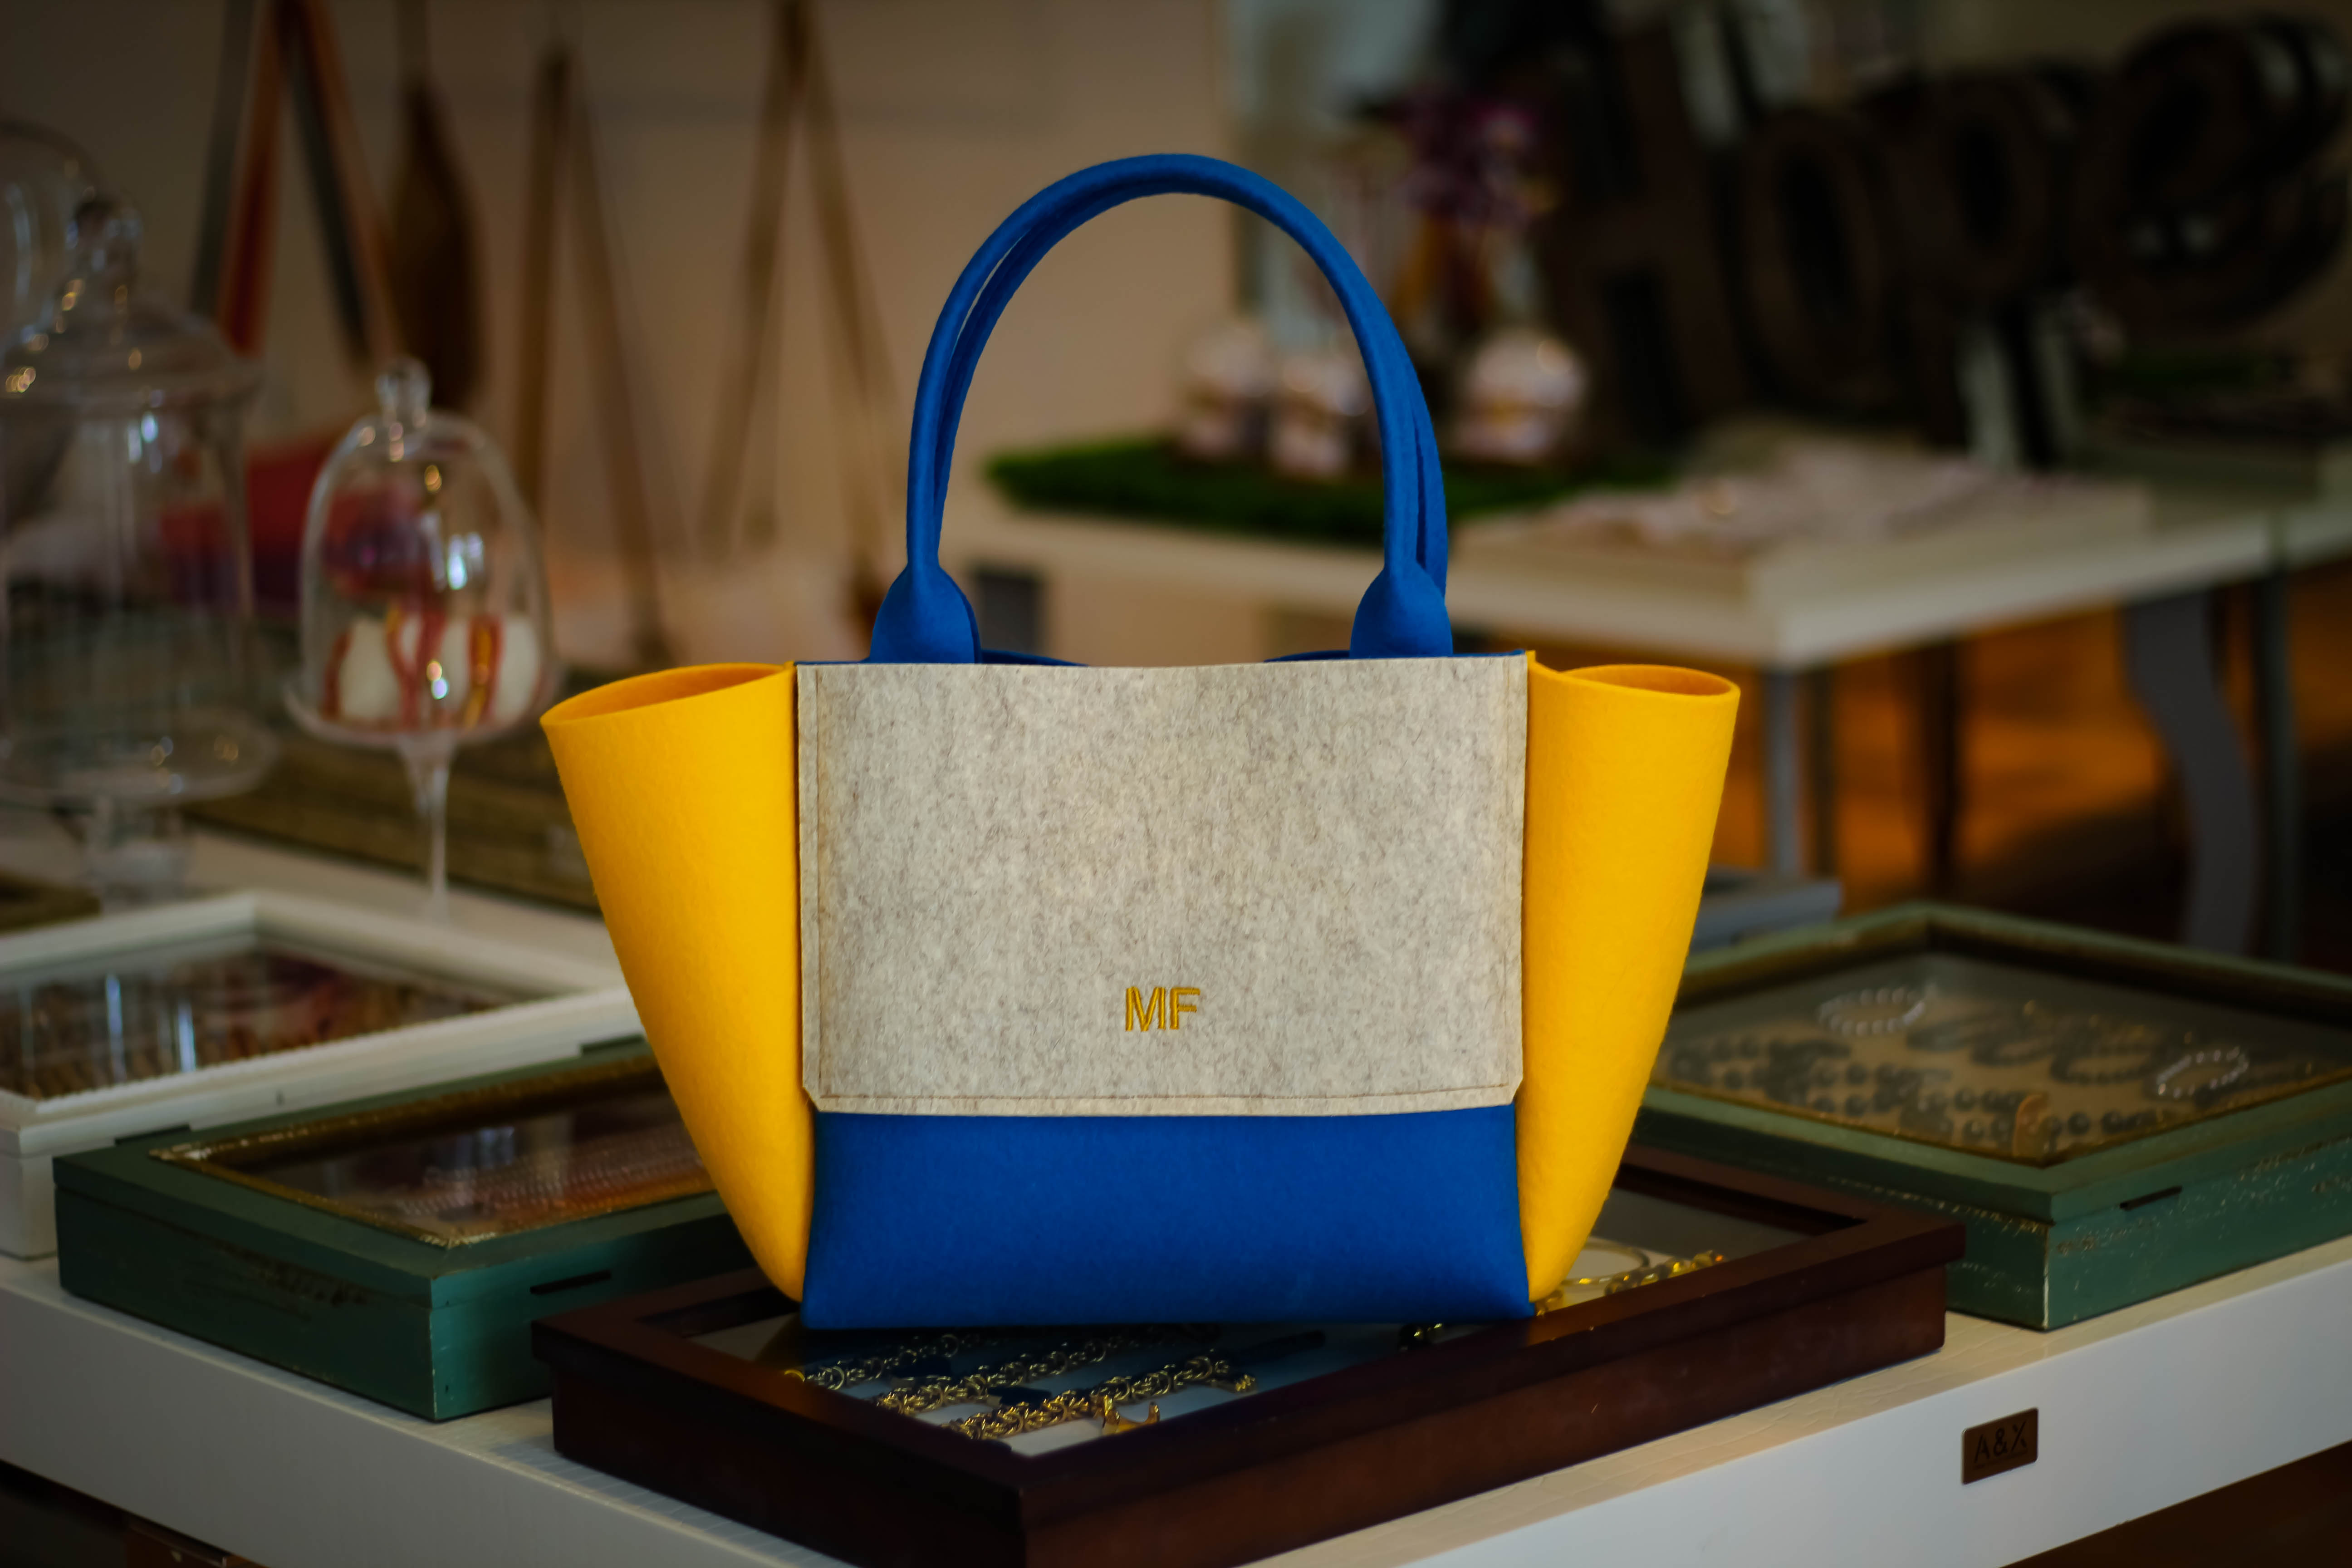 Artak is your new IT BAG: design it, monogram it and make it your own!